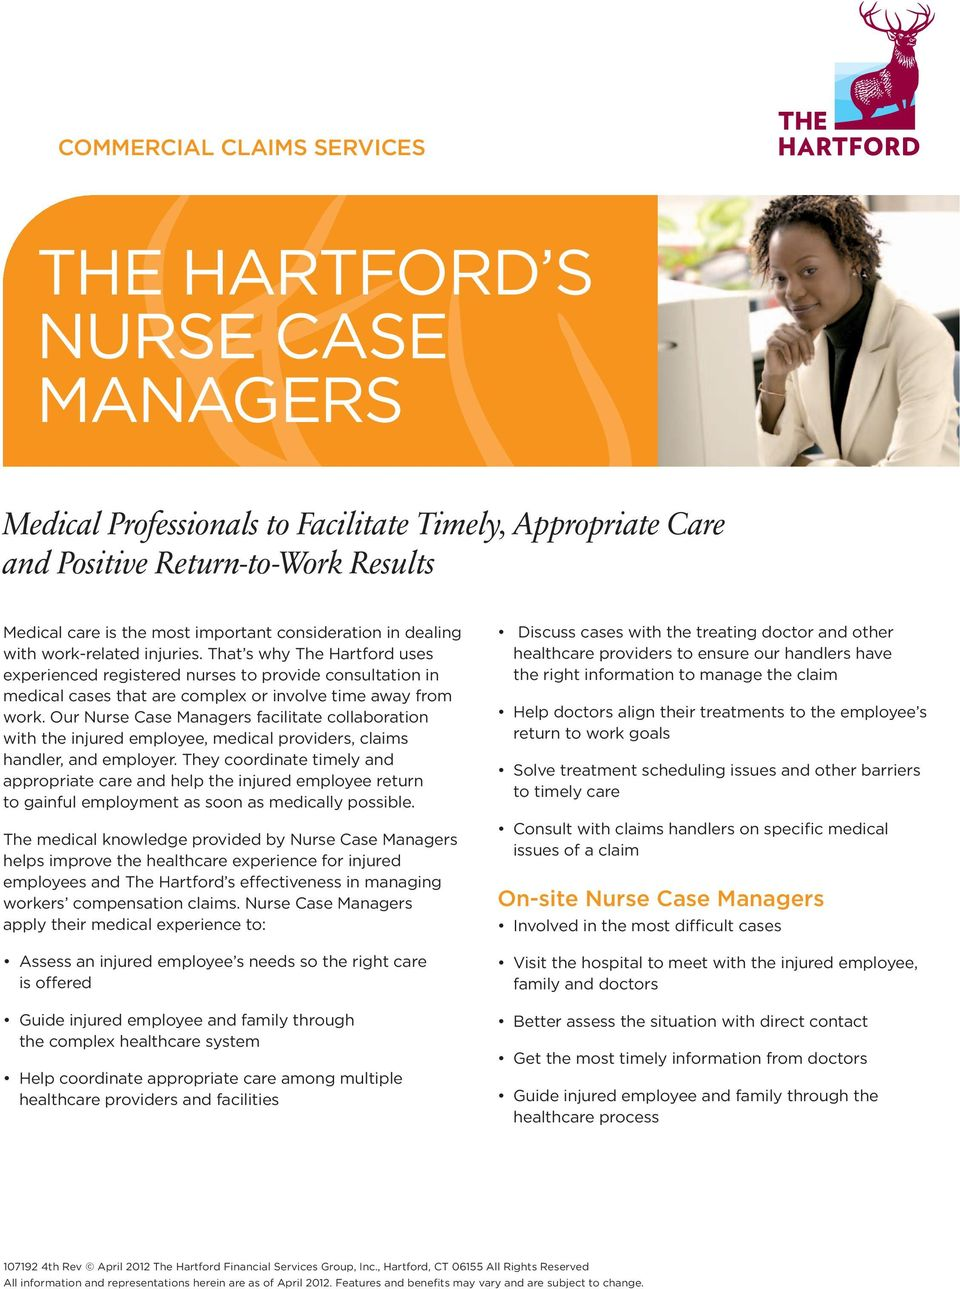 Our Nurse Case Managers facilitate collaboration with the injured employee, medical providers, claims handler, and employer.